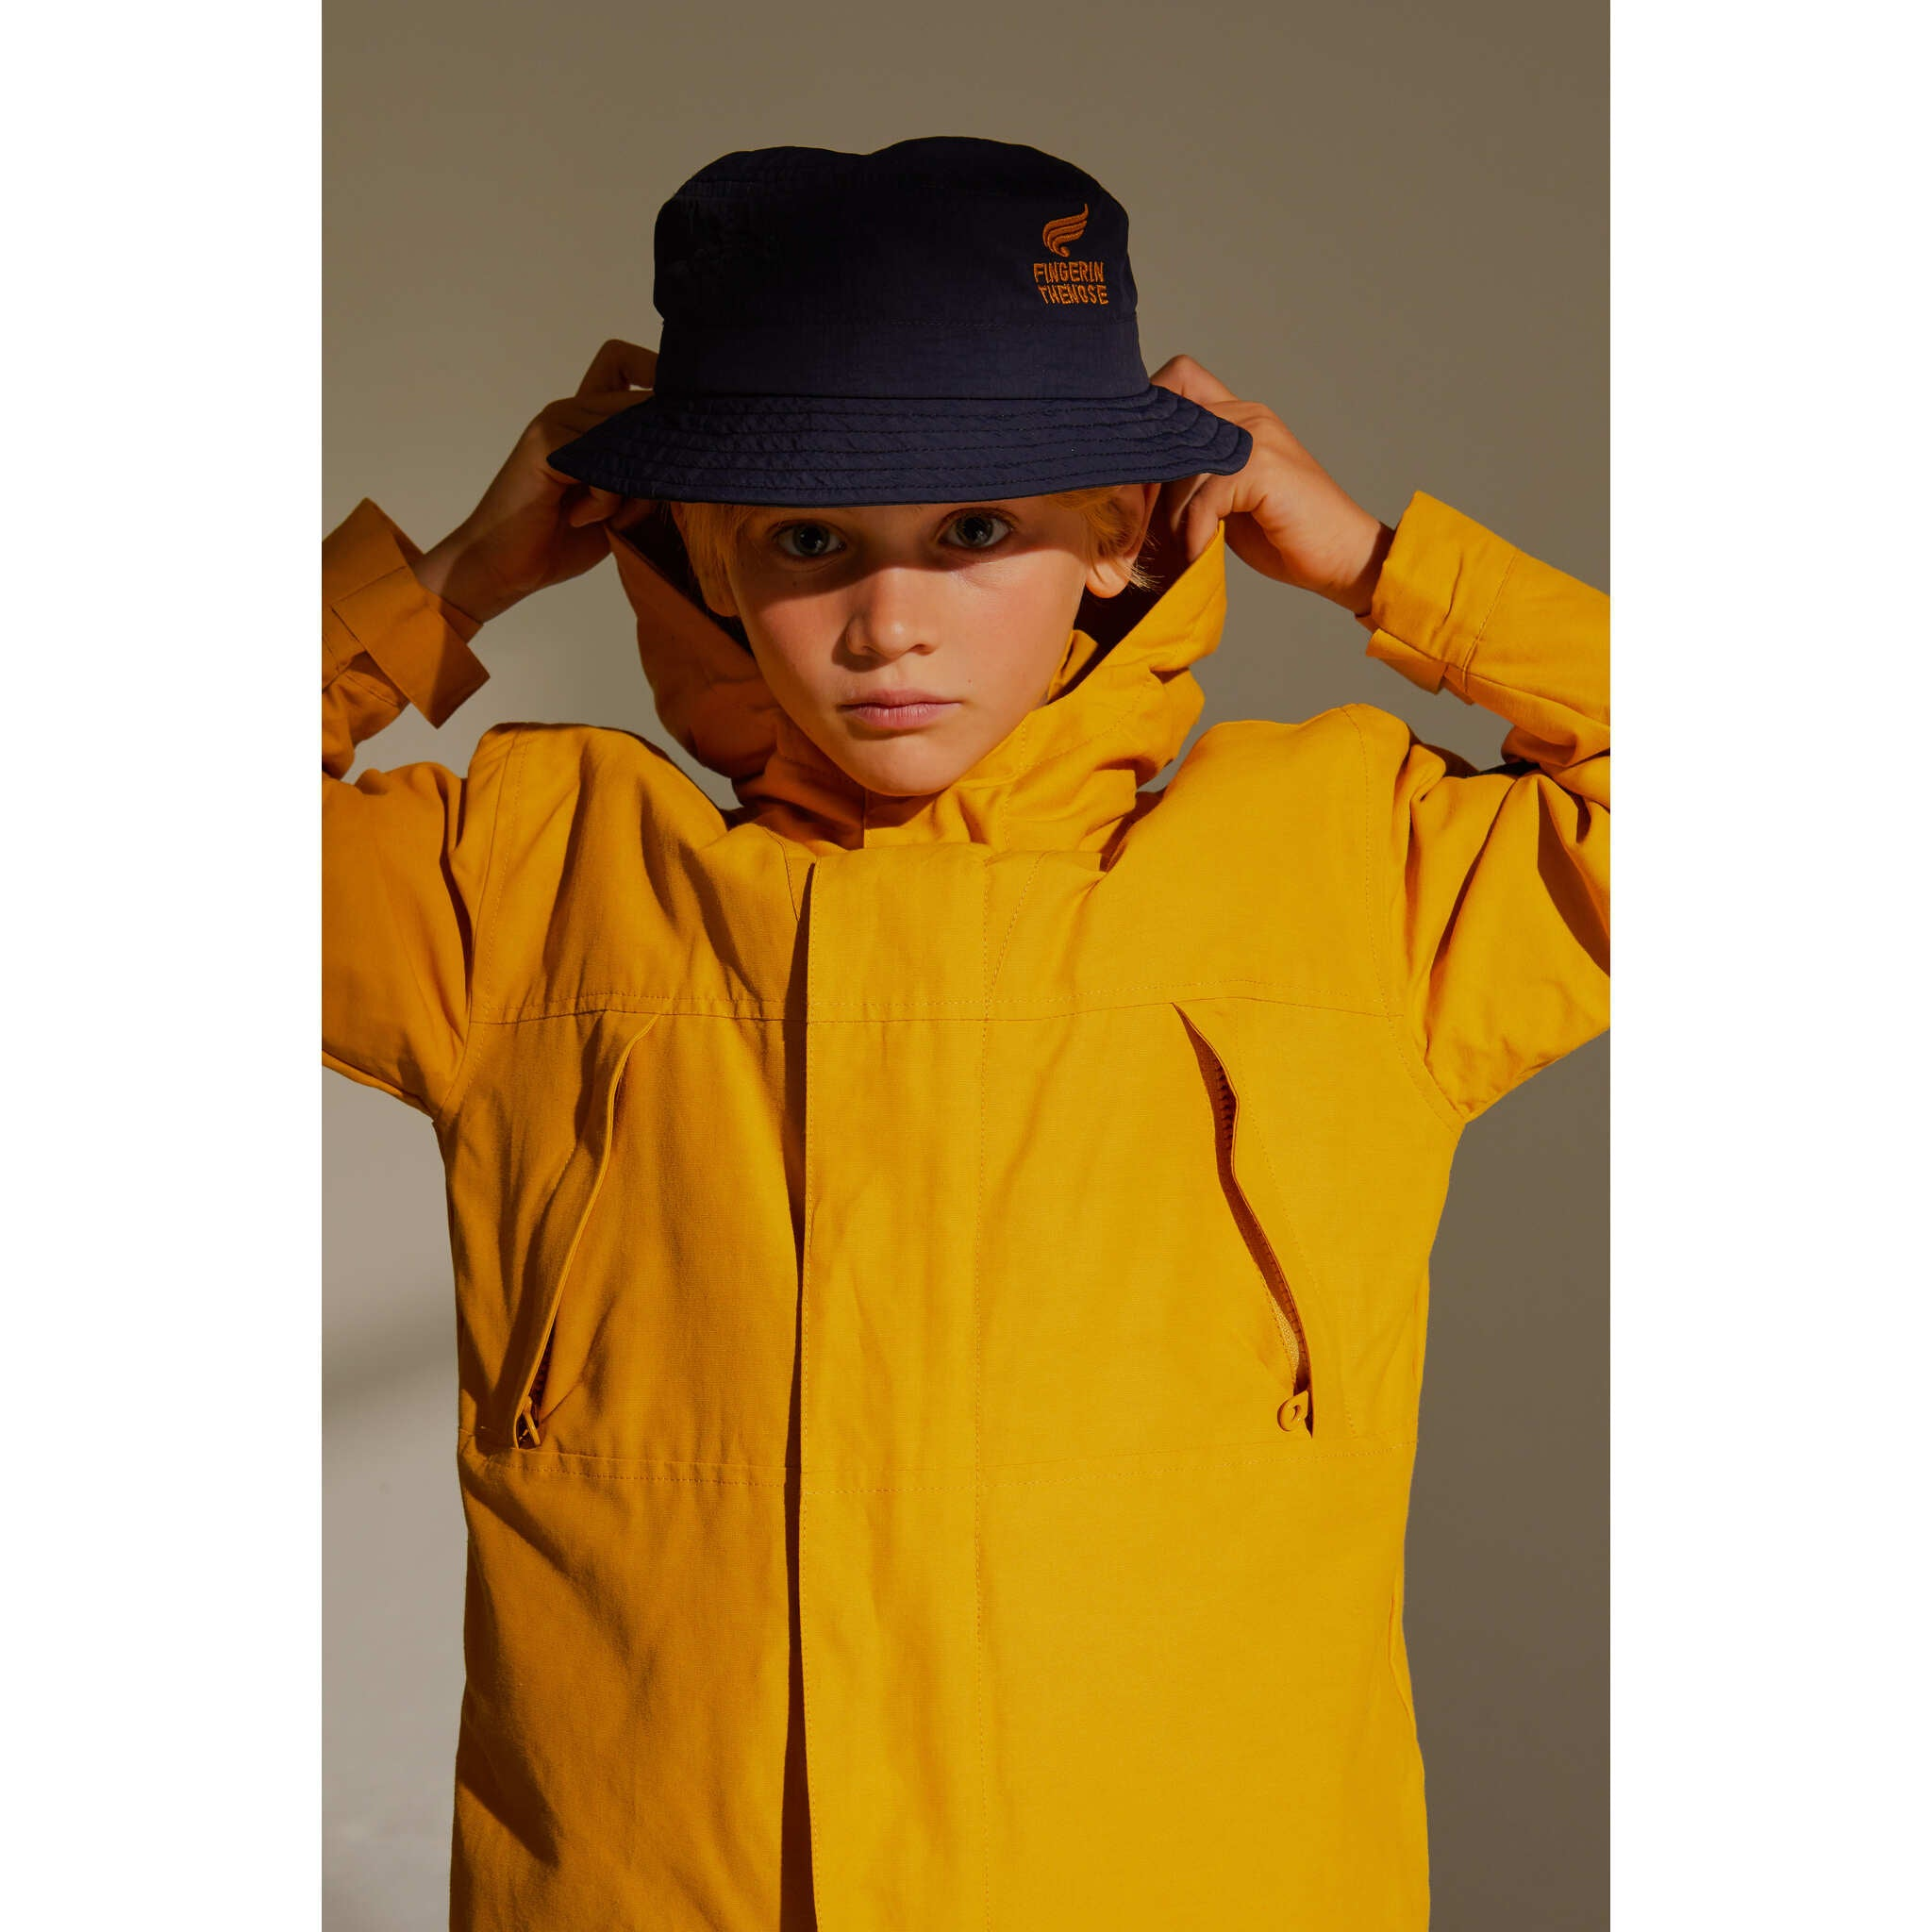 ZEPHYR Mustard -  Windbreaker Jacket 2